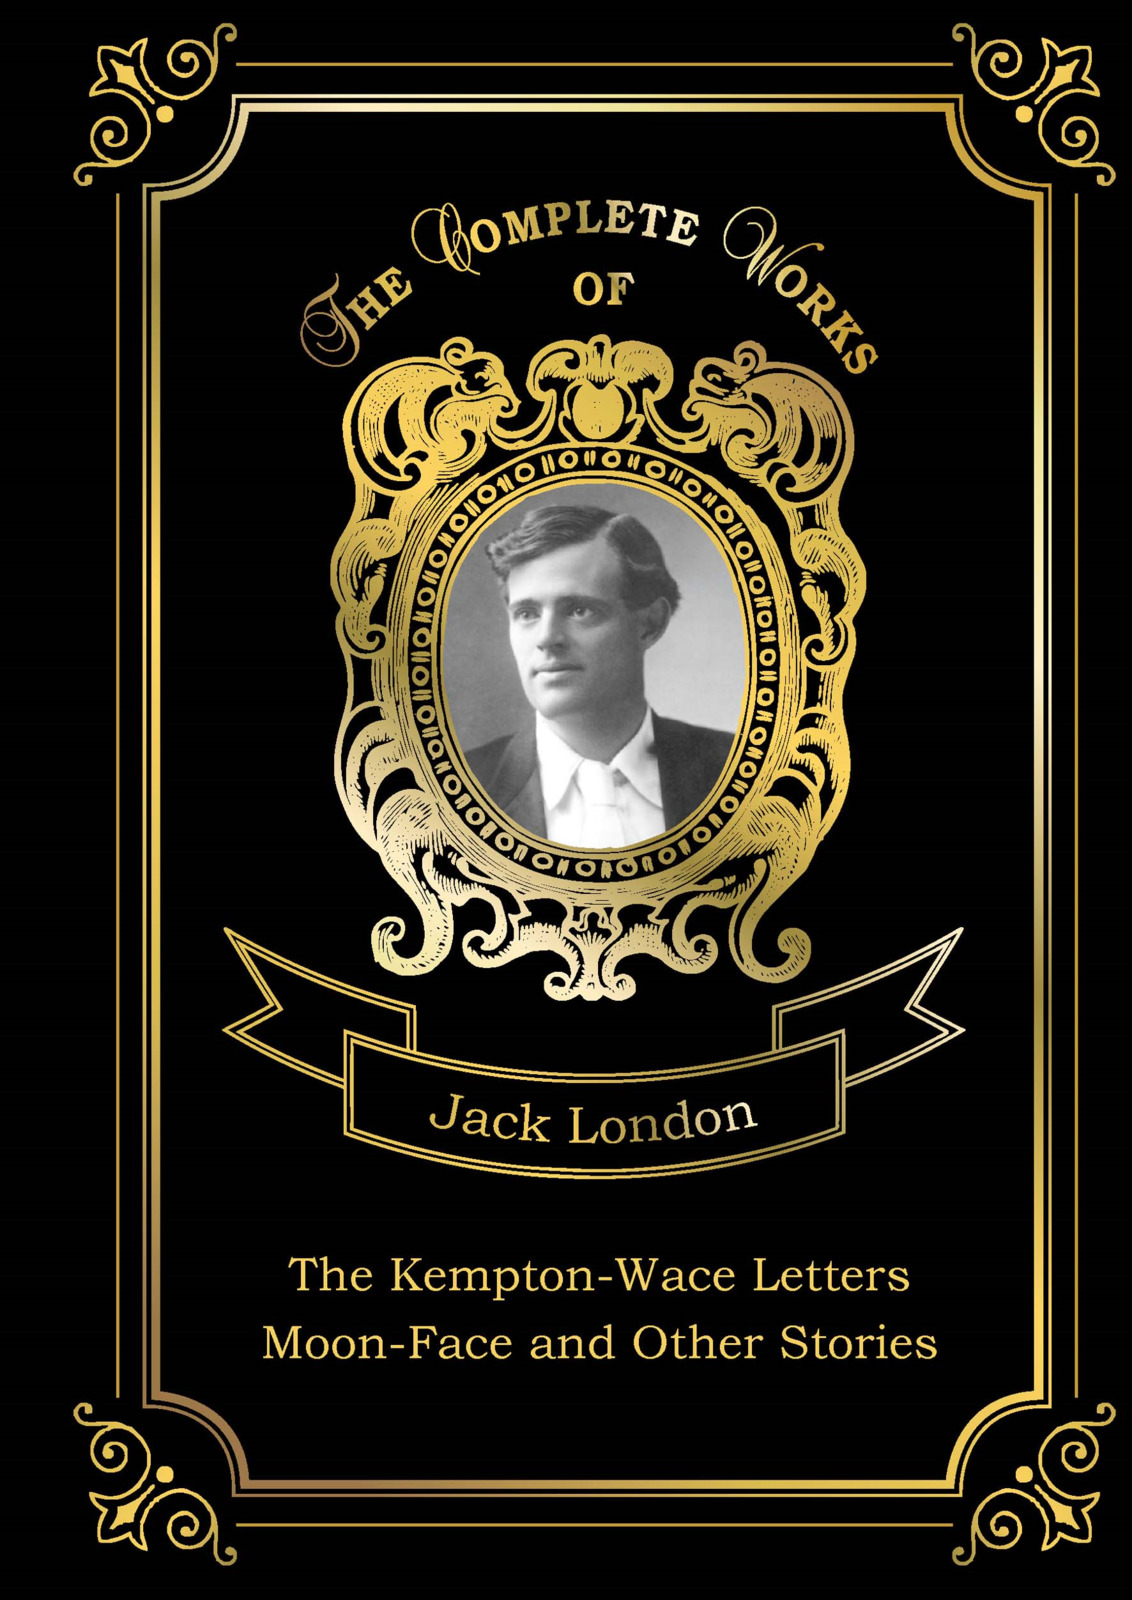 Jack London The Kempton-Wace Letters: Moon-Face and Other Stories jack london the kempton wace letters